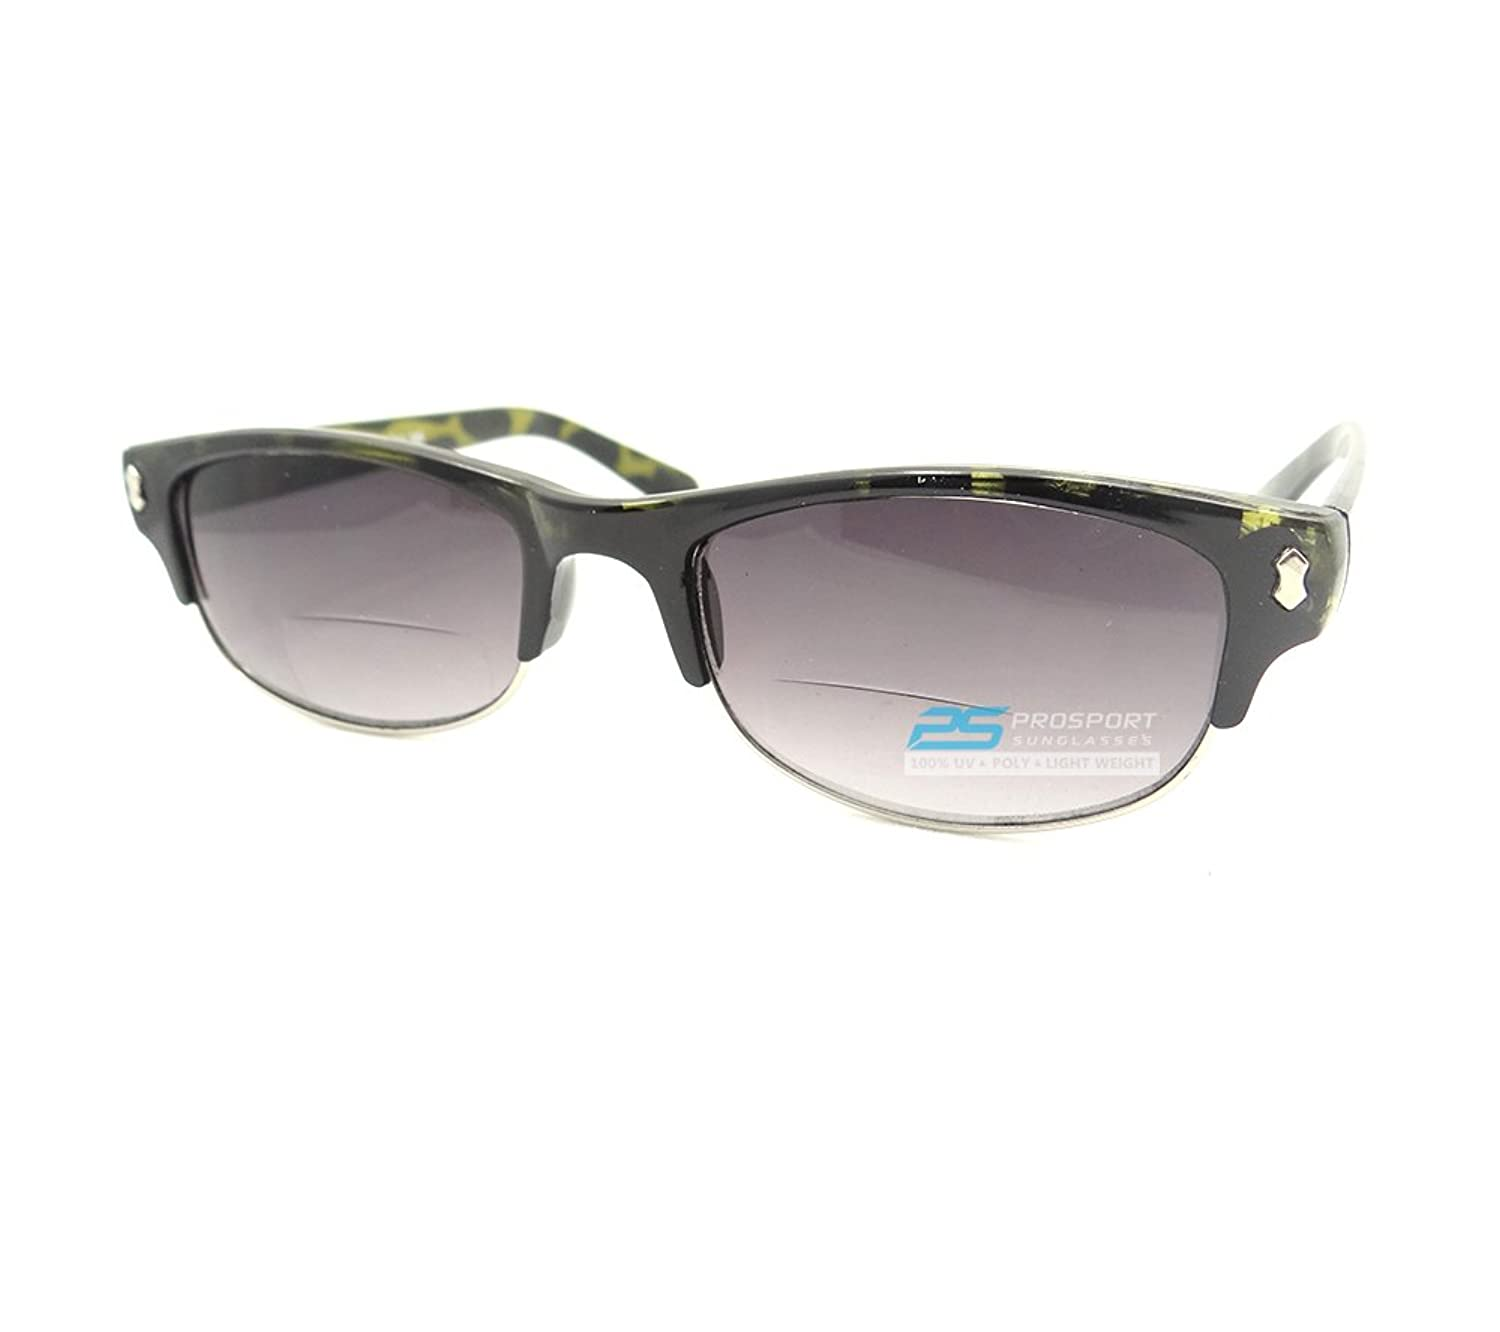 78d2f6dbff 70%OFF Wayfarer Retro Rectangle Half Rim Bifocal Tinted Glasses ...